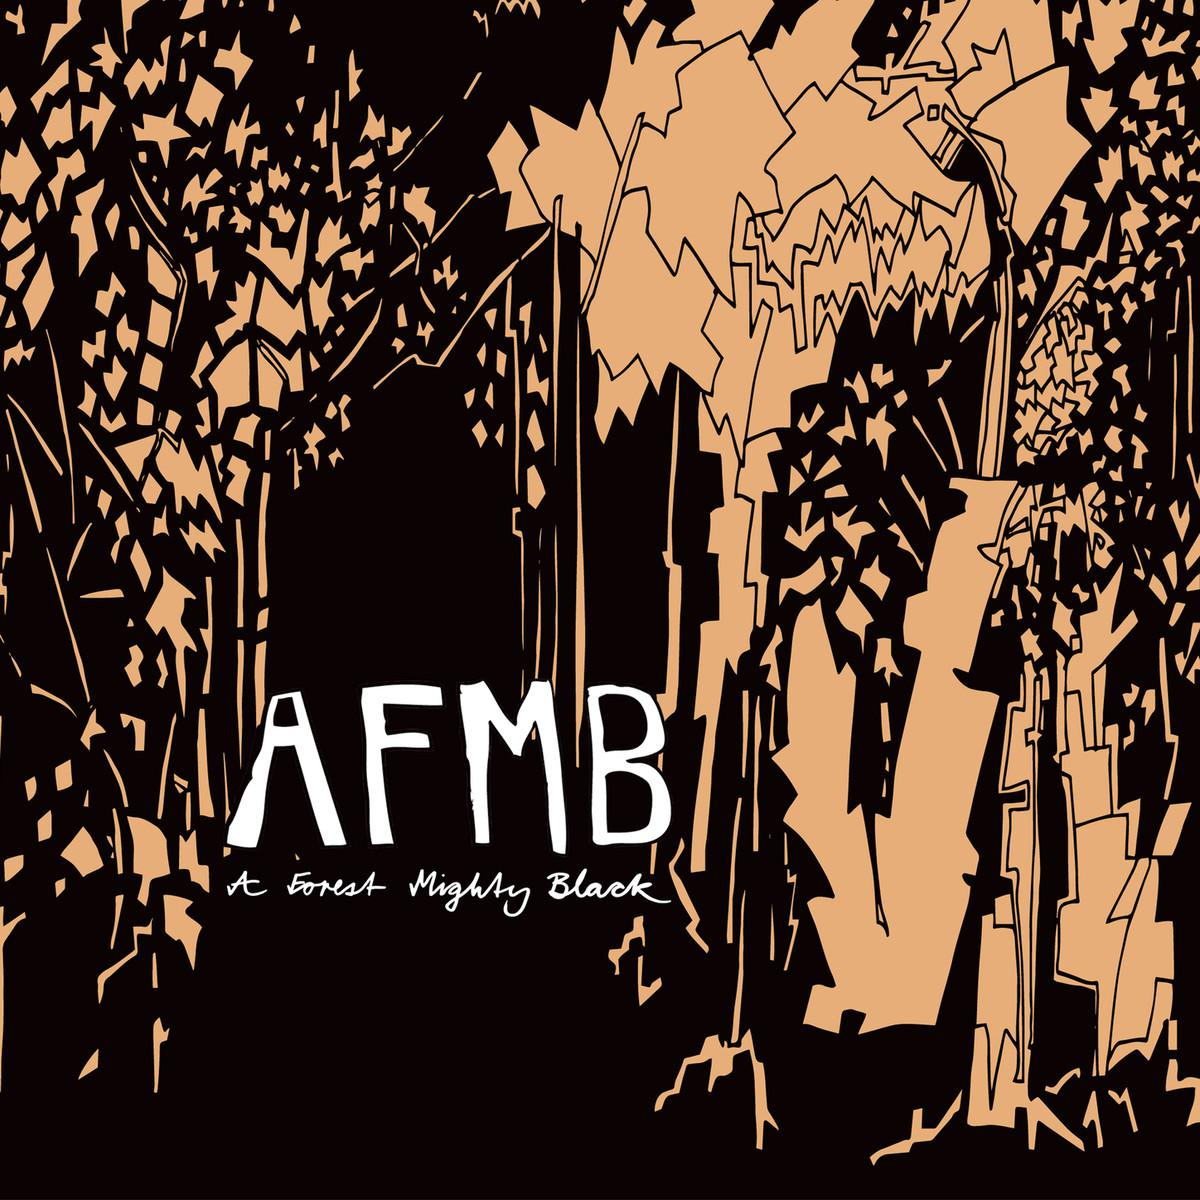 AFMB - A Forest Mighty Black (2014)